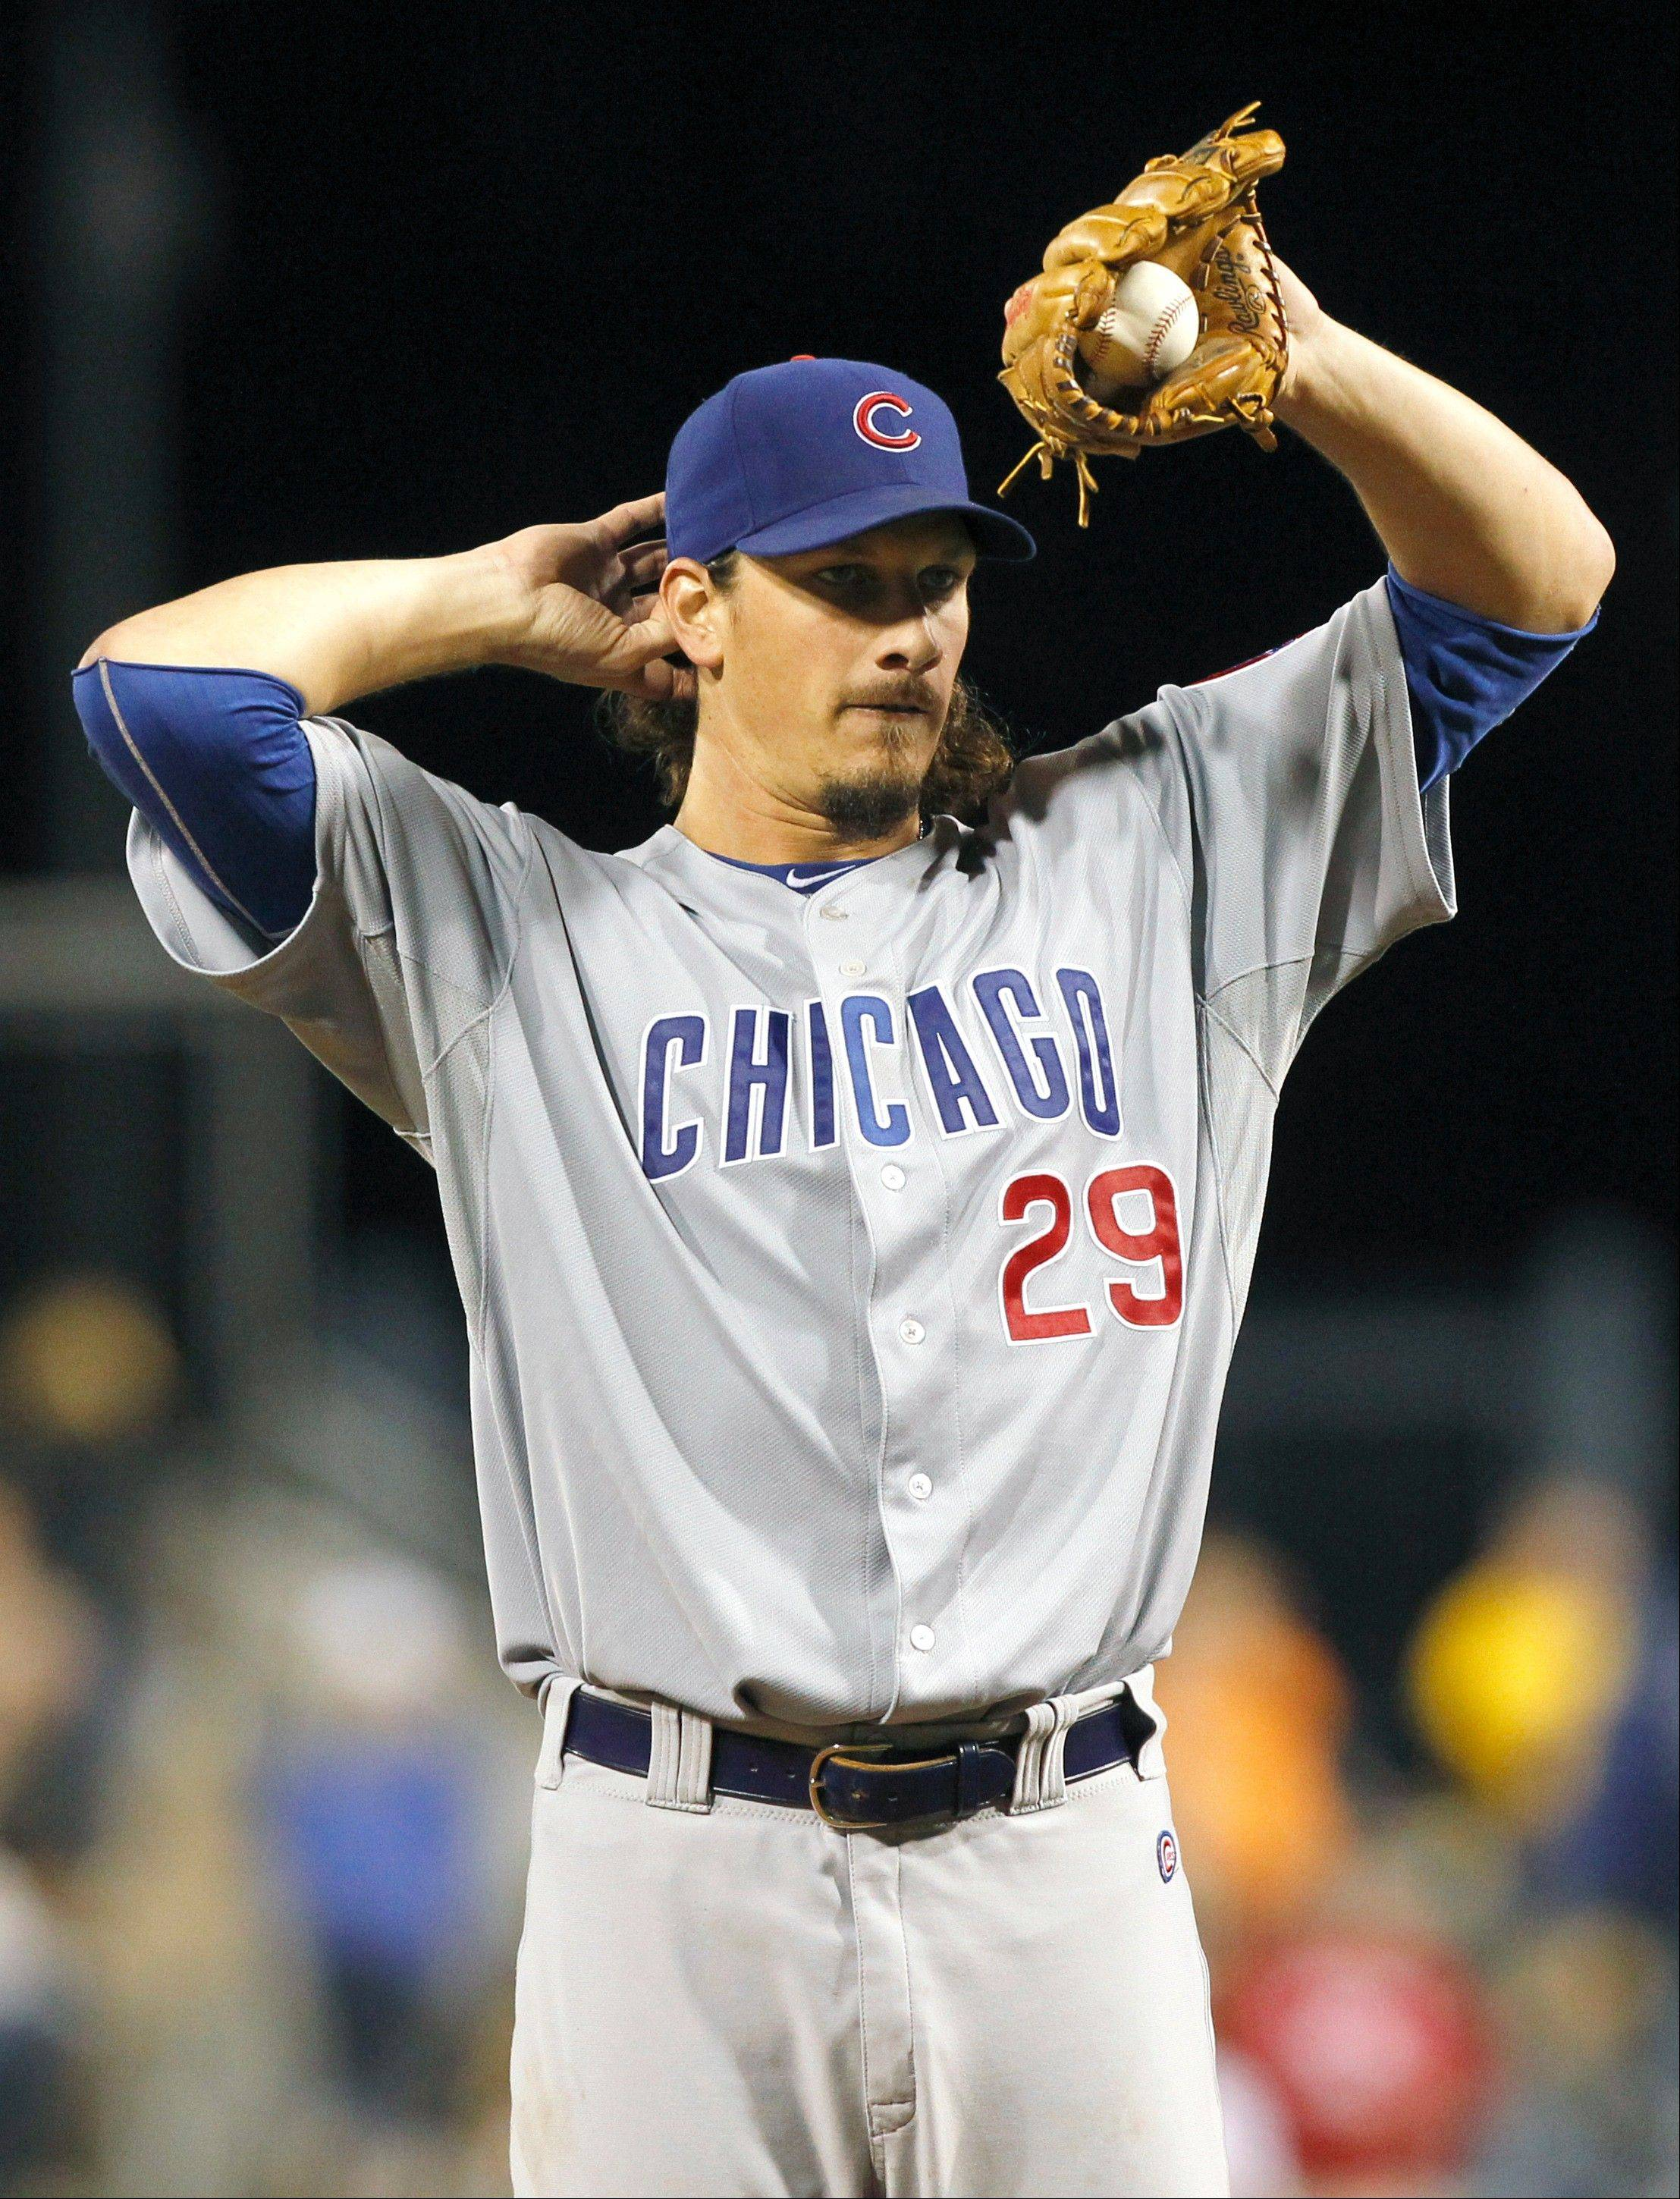 In his first season as a starter, r Jeff Samardzija worked 174 innings with a 9-13 record, an ERA of and 9.2 strikeouts per 9 innings pitched.